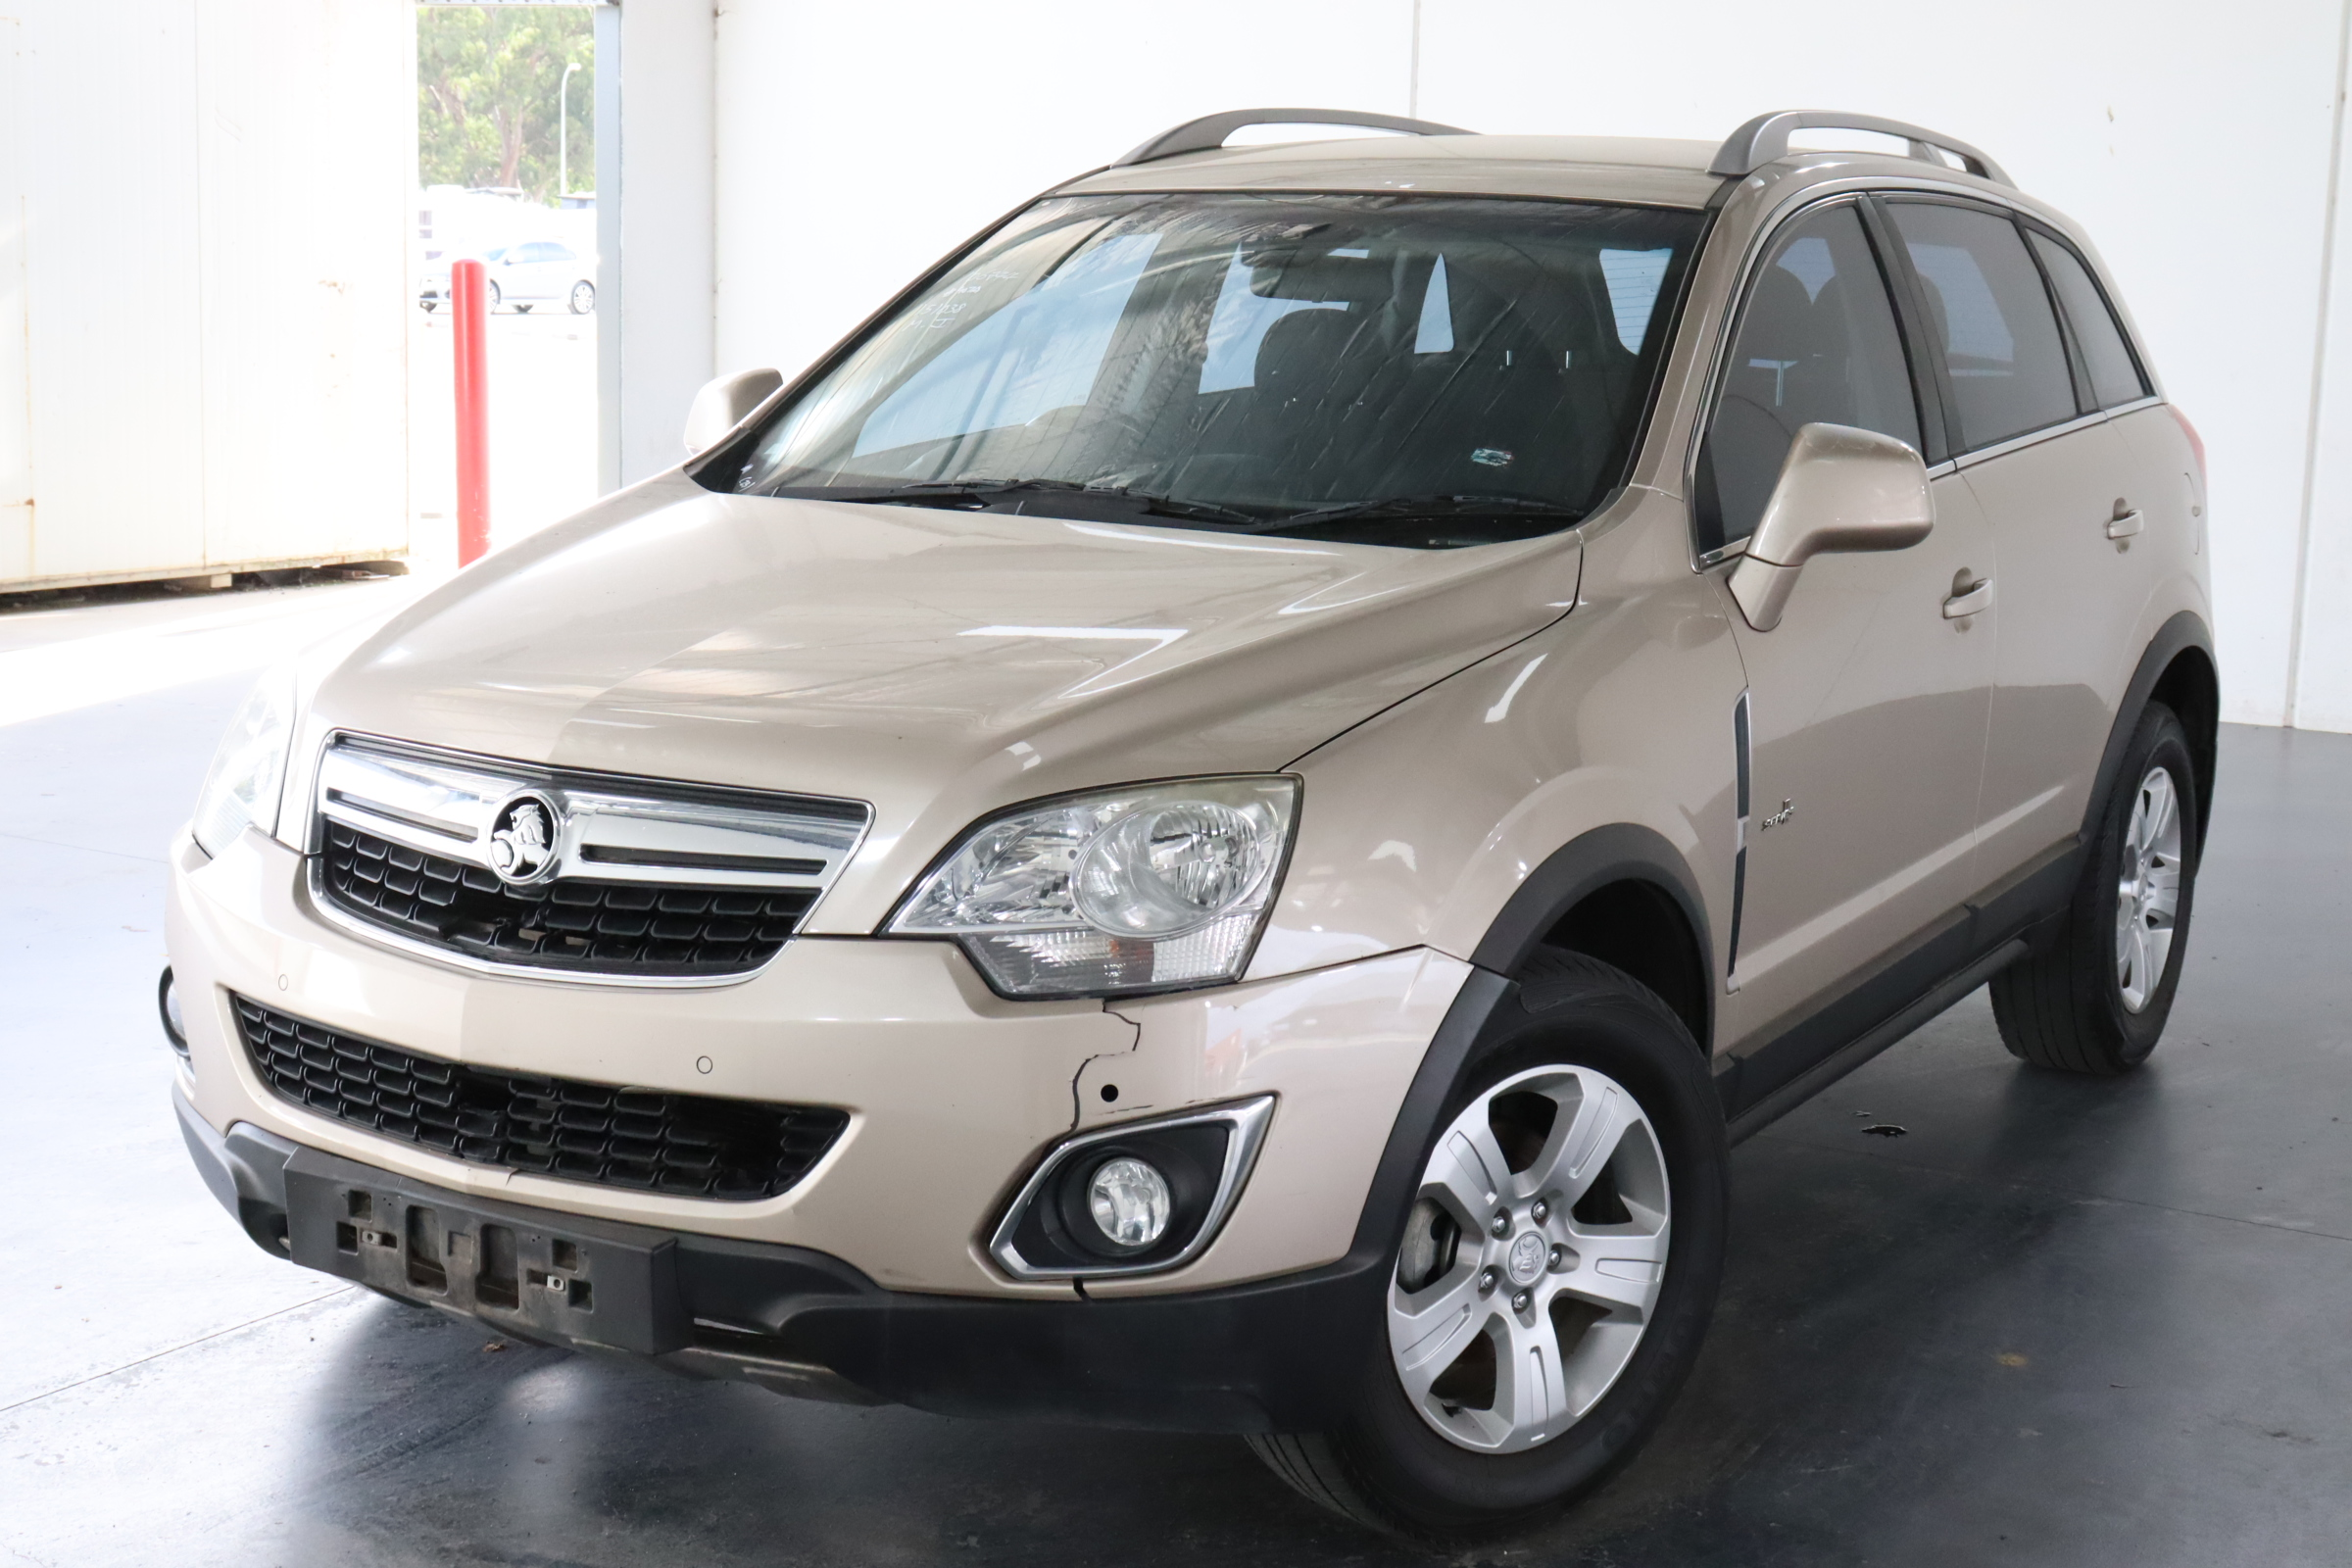 2012 Holden Captiva 5 (FWD) CG II Manual Wagon